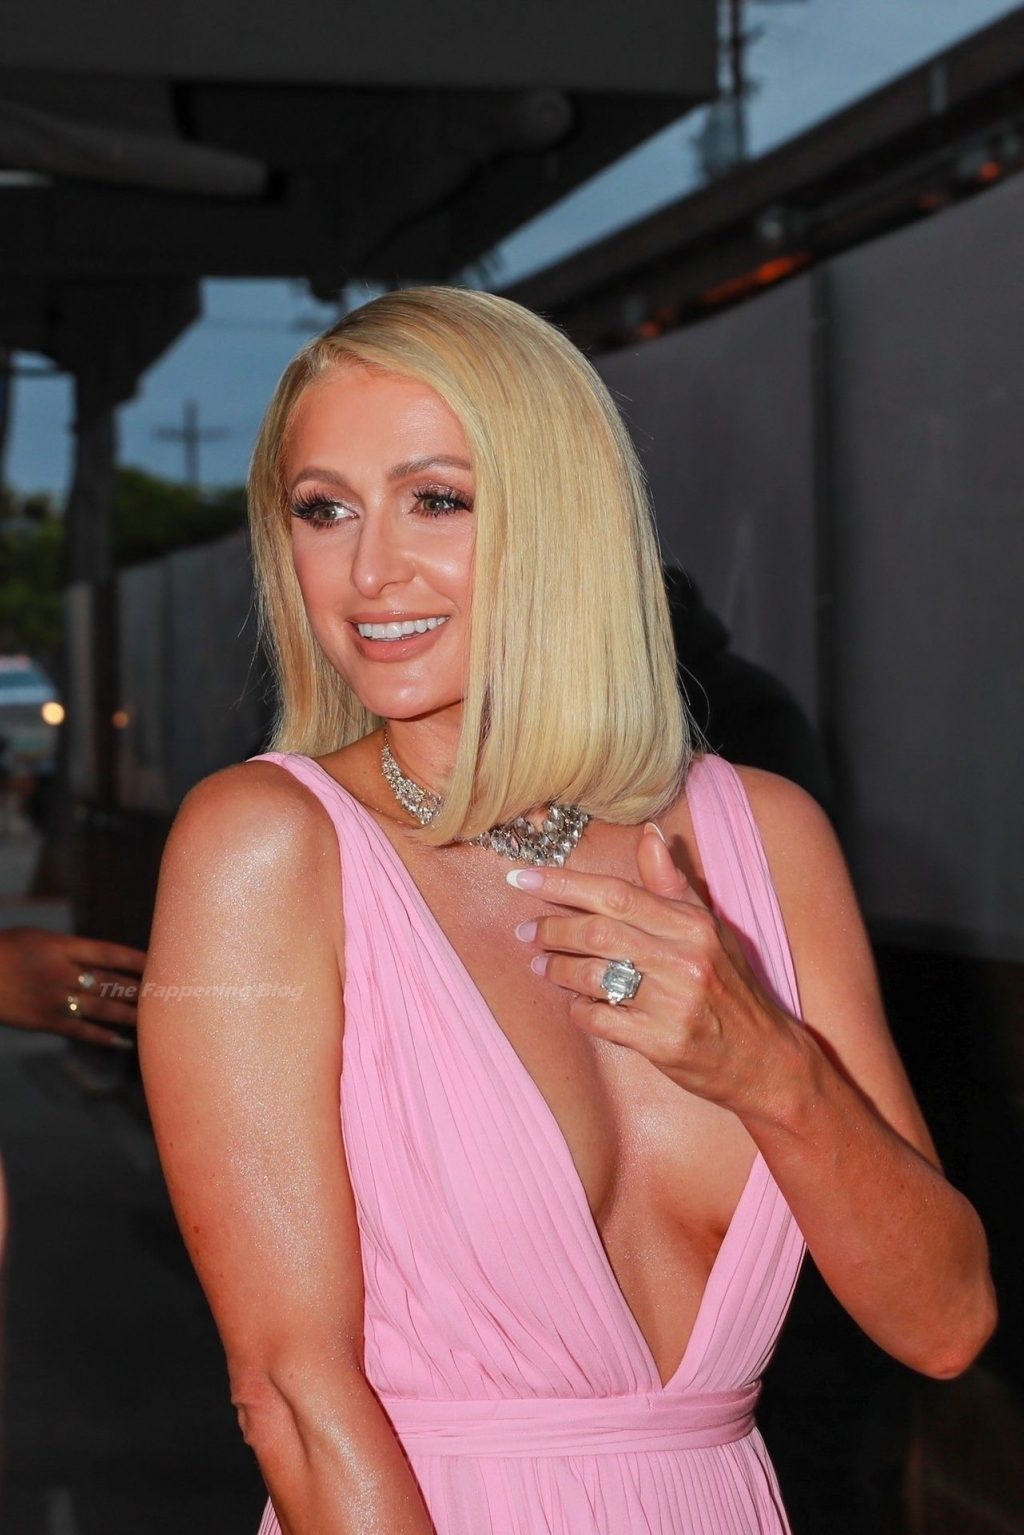 Pretty in Pink! Paris Hilton Arrives For Dinner at Craig's in WeHo (118 Photos)